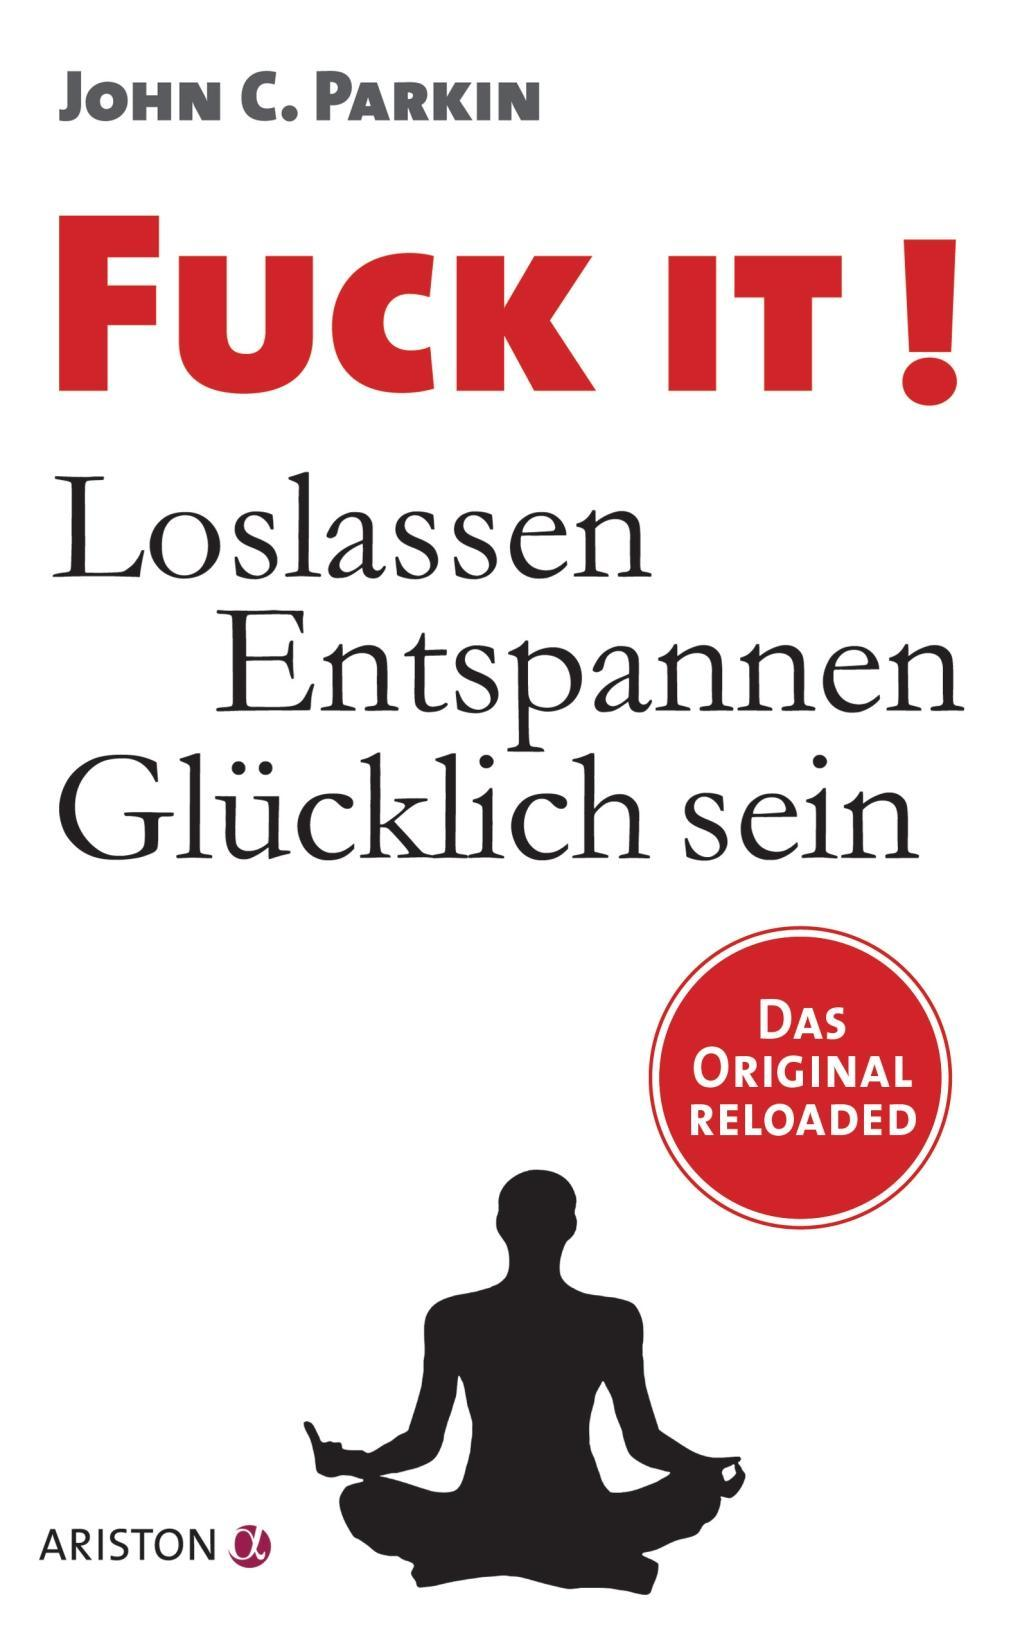 Ariston Verlag Fuck It! (Parkin John C.)(Paperback)